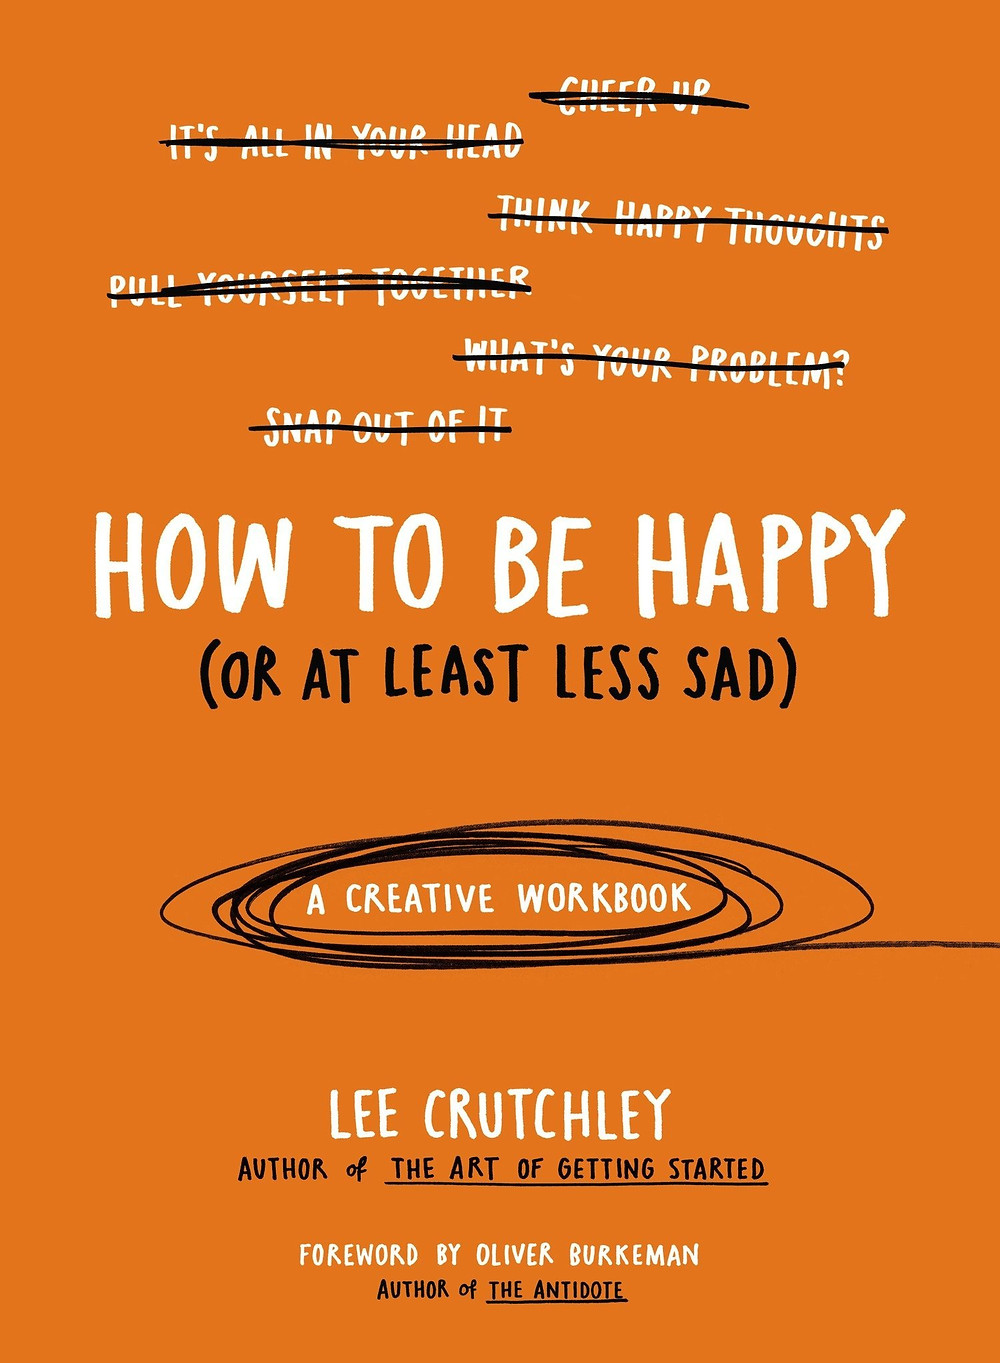 How To Be Happy (Or At Least Less Sad) by Lee Crutchley image via Amazon website